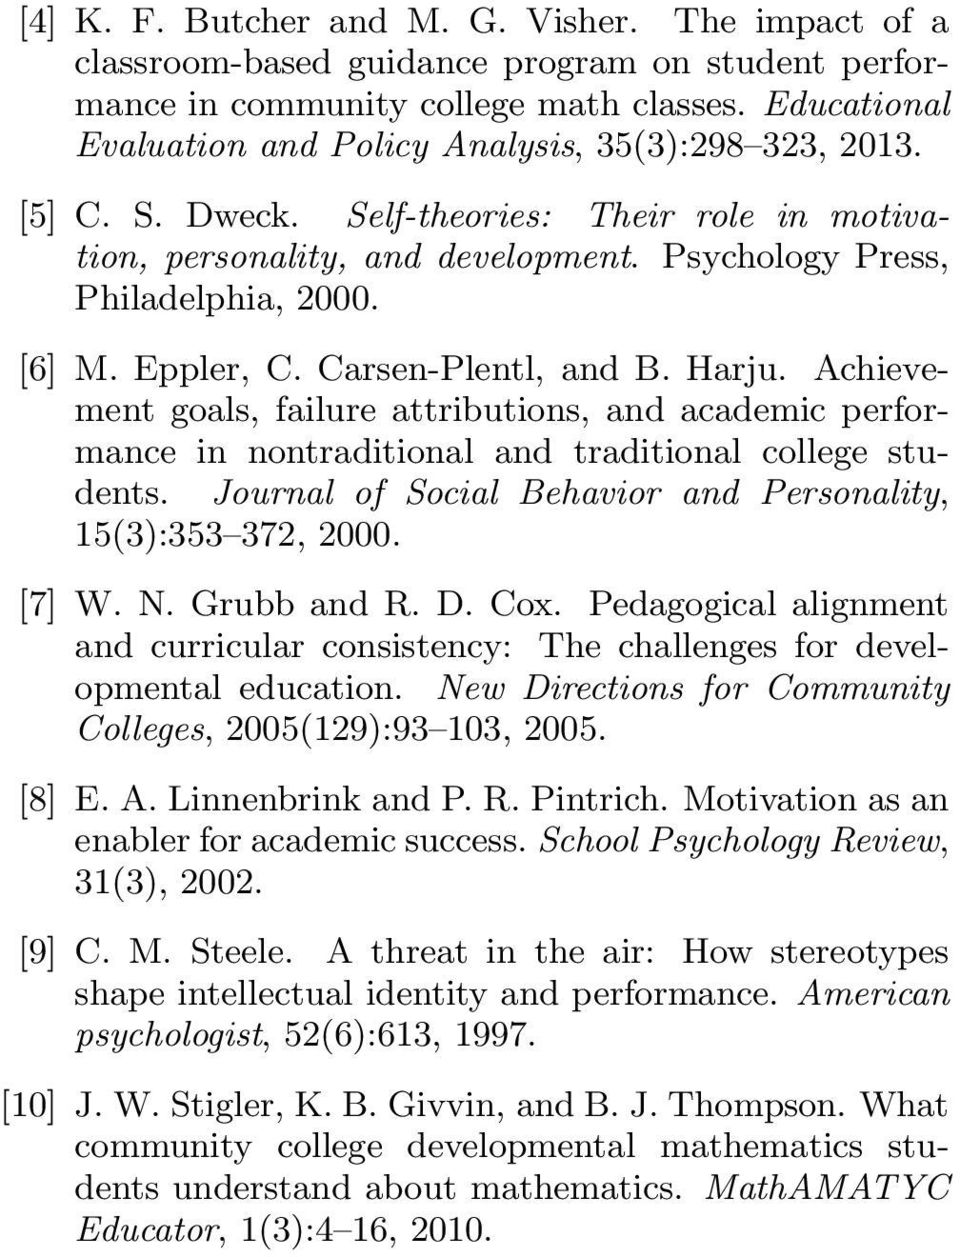 Eppler, C. Carsen-Plentl, and B. Harju. Achievement goals, failure attributions, and academic performance in nontraditional and traditional college students.